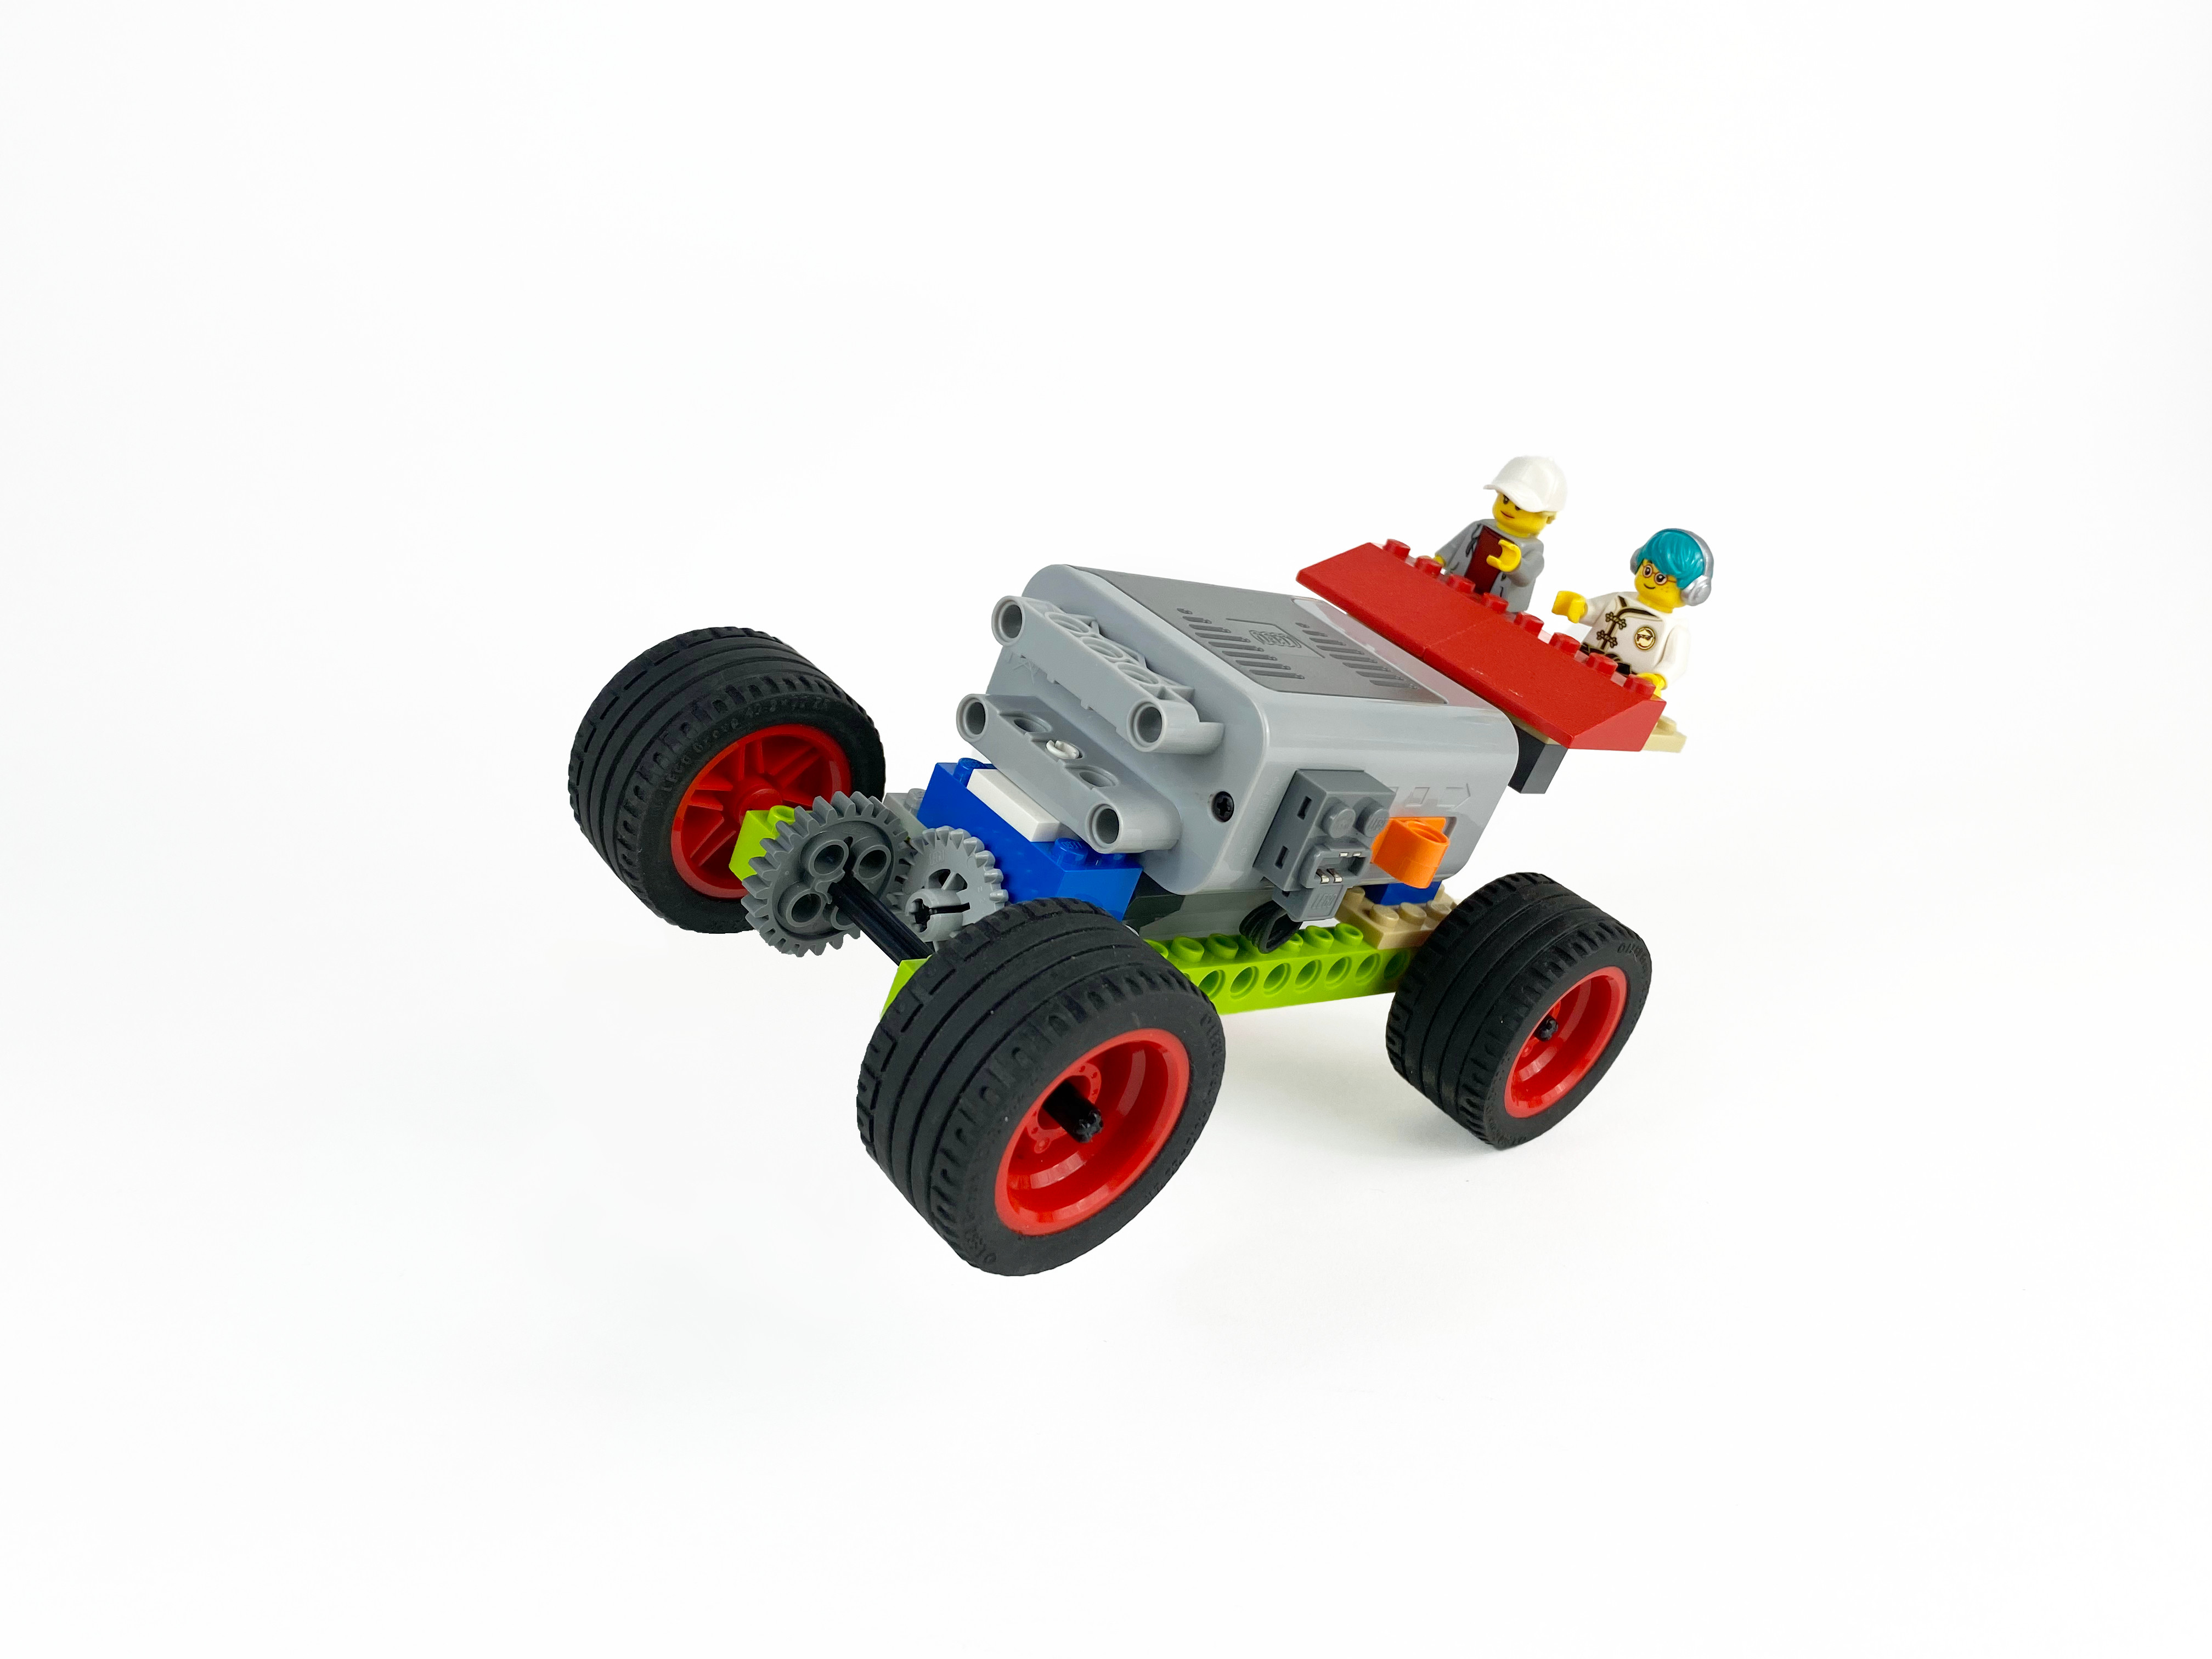 Lego Engineering Ages: 8-12